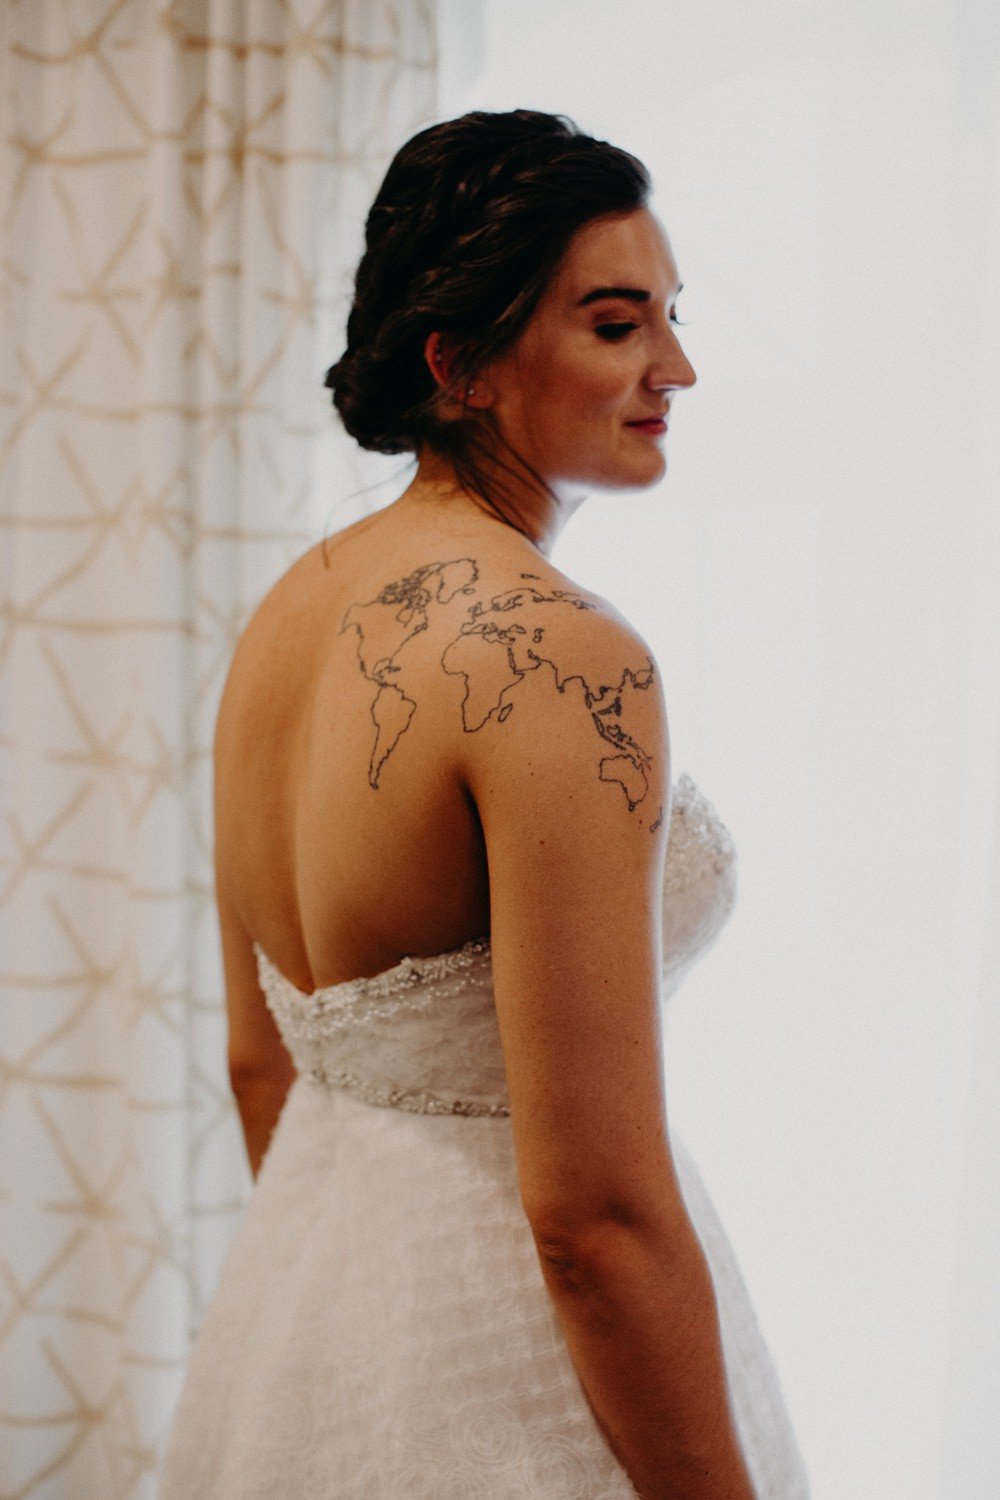 Dress Gown Bride Bridal Strapless Tattoo Georgia Wedding Aline Marin Photography